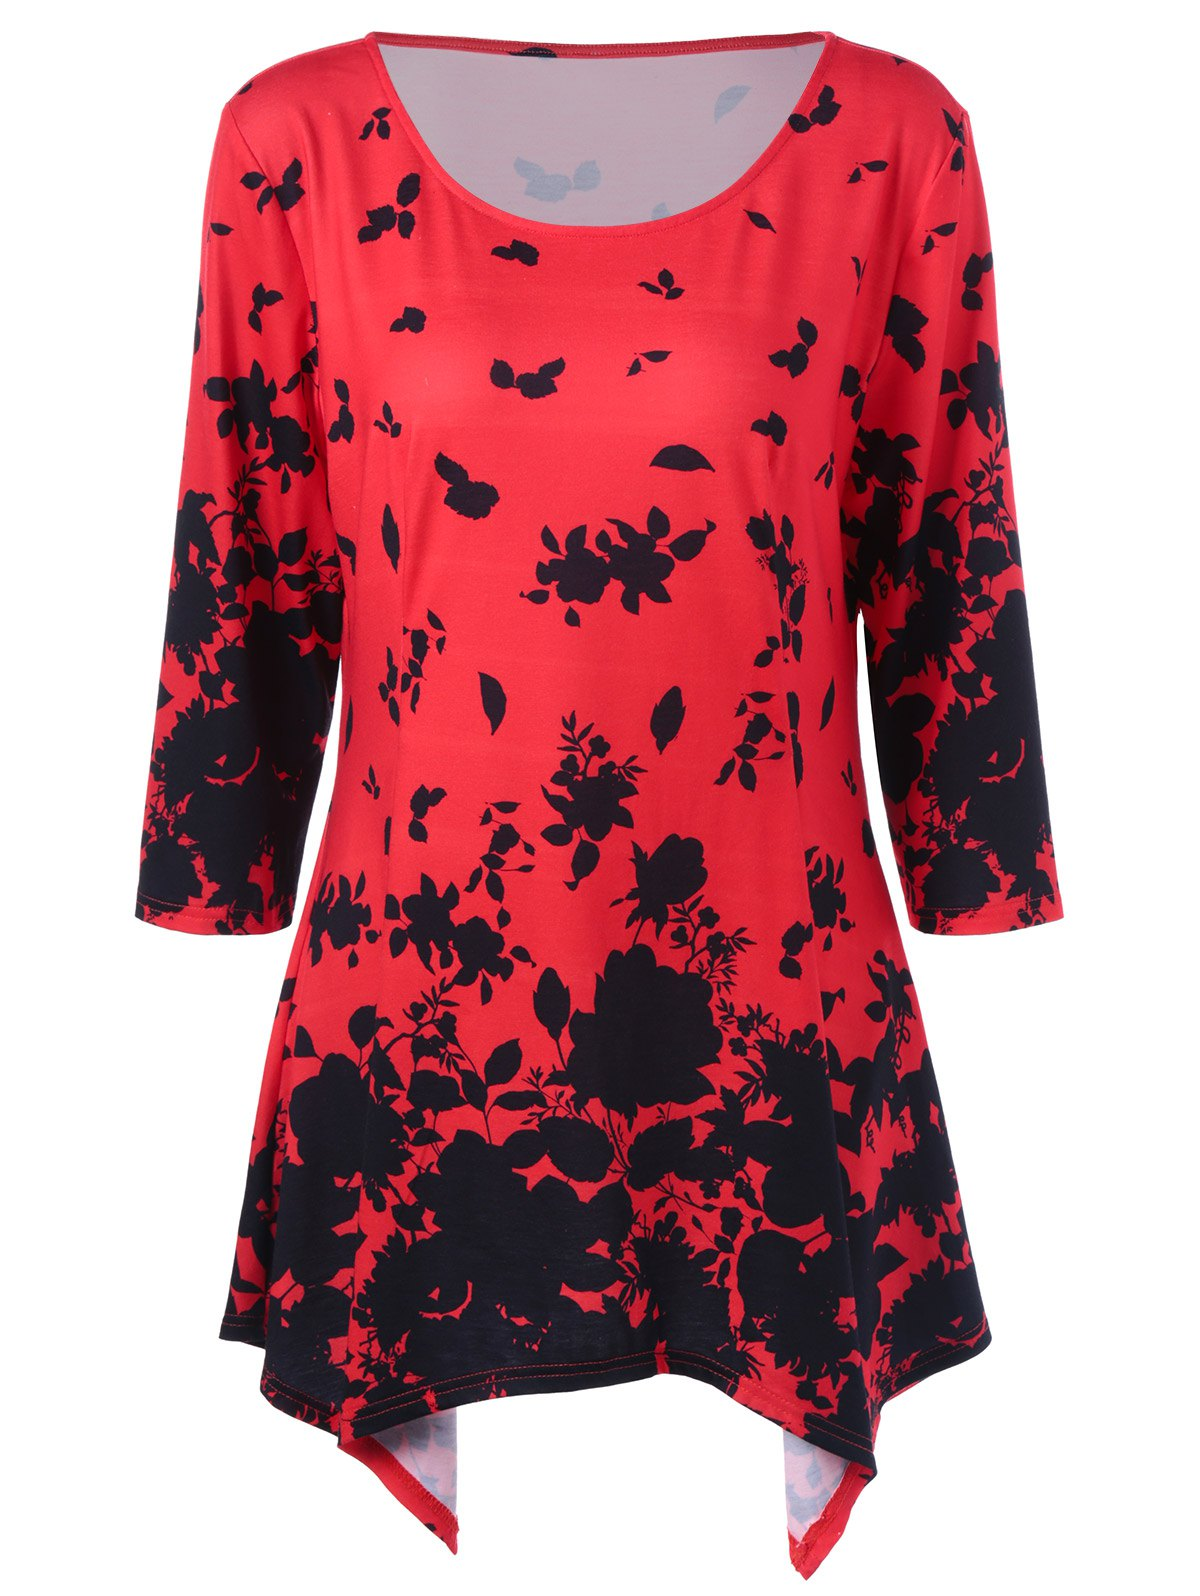 Plus Size Floral Asymmetrical Tunic T-Shirt от Rosegal.com INT